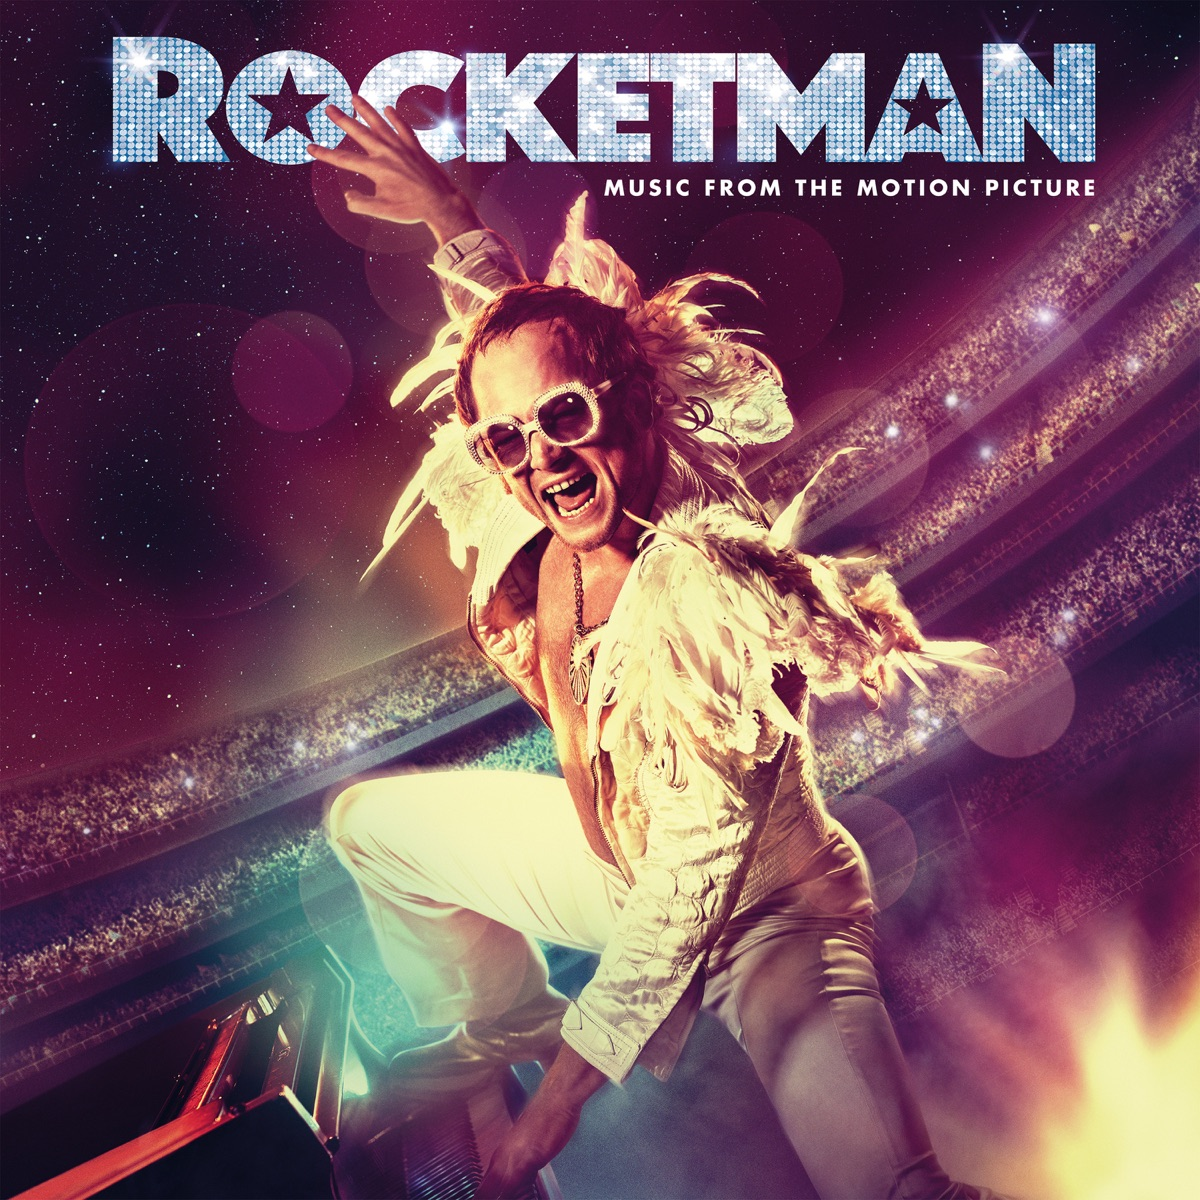 Rocketman Music from the Motion Picture Elton John  Taron Egerton CD cover